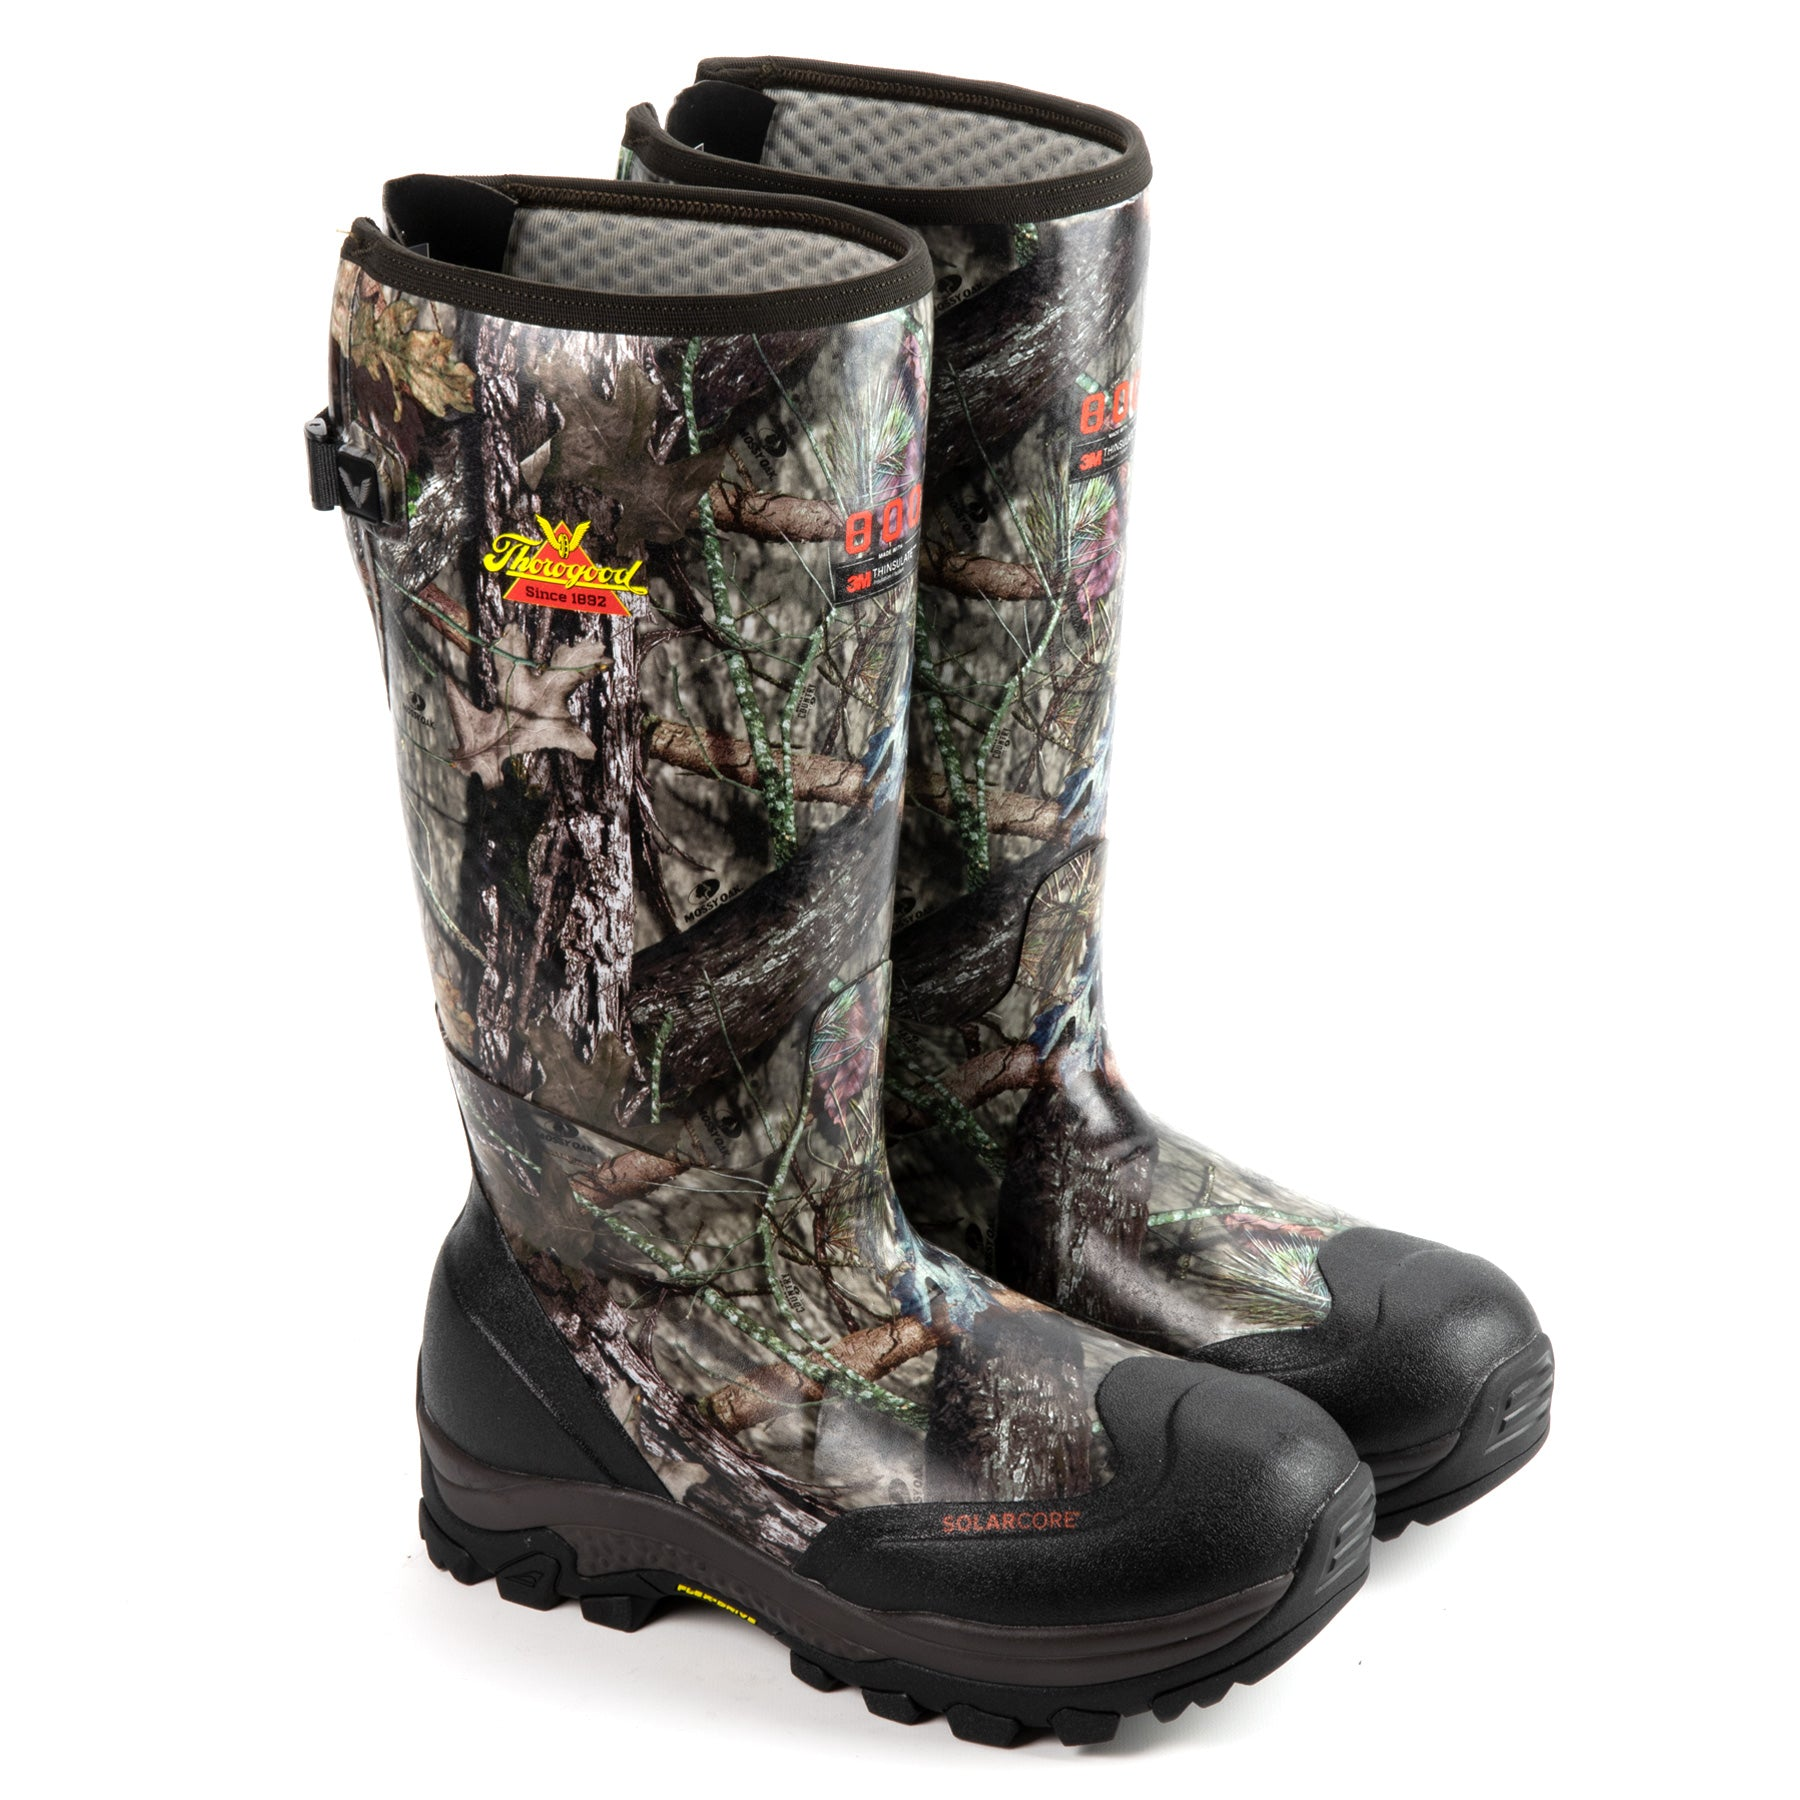 "Infinity FD 17"" Waterproof 800g Rubber Work Boot in Mossy Oak Break-up Country color from the side view"